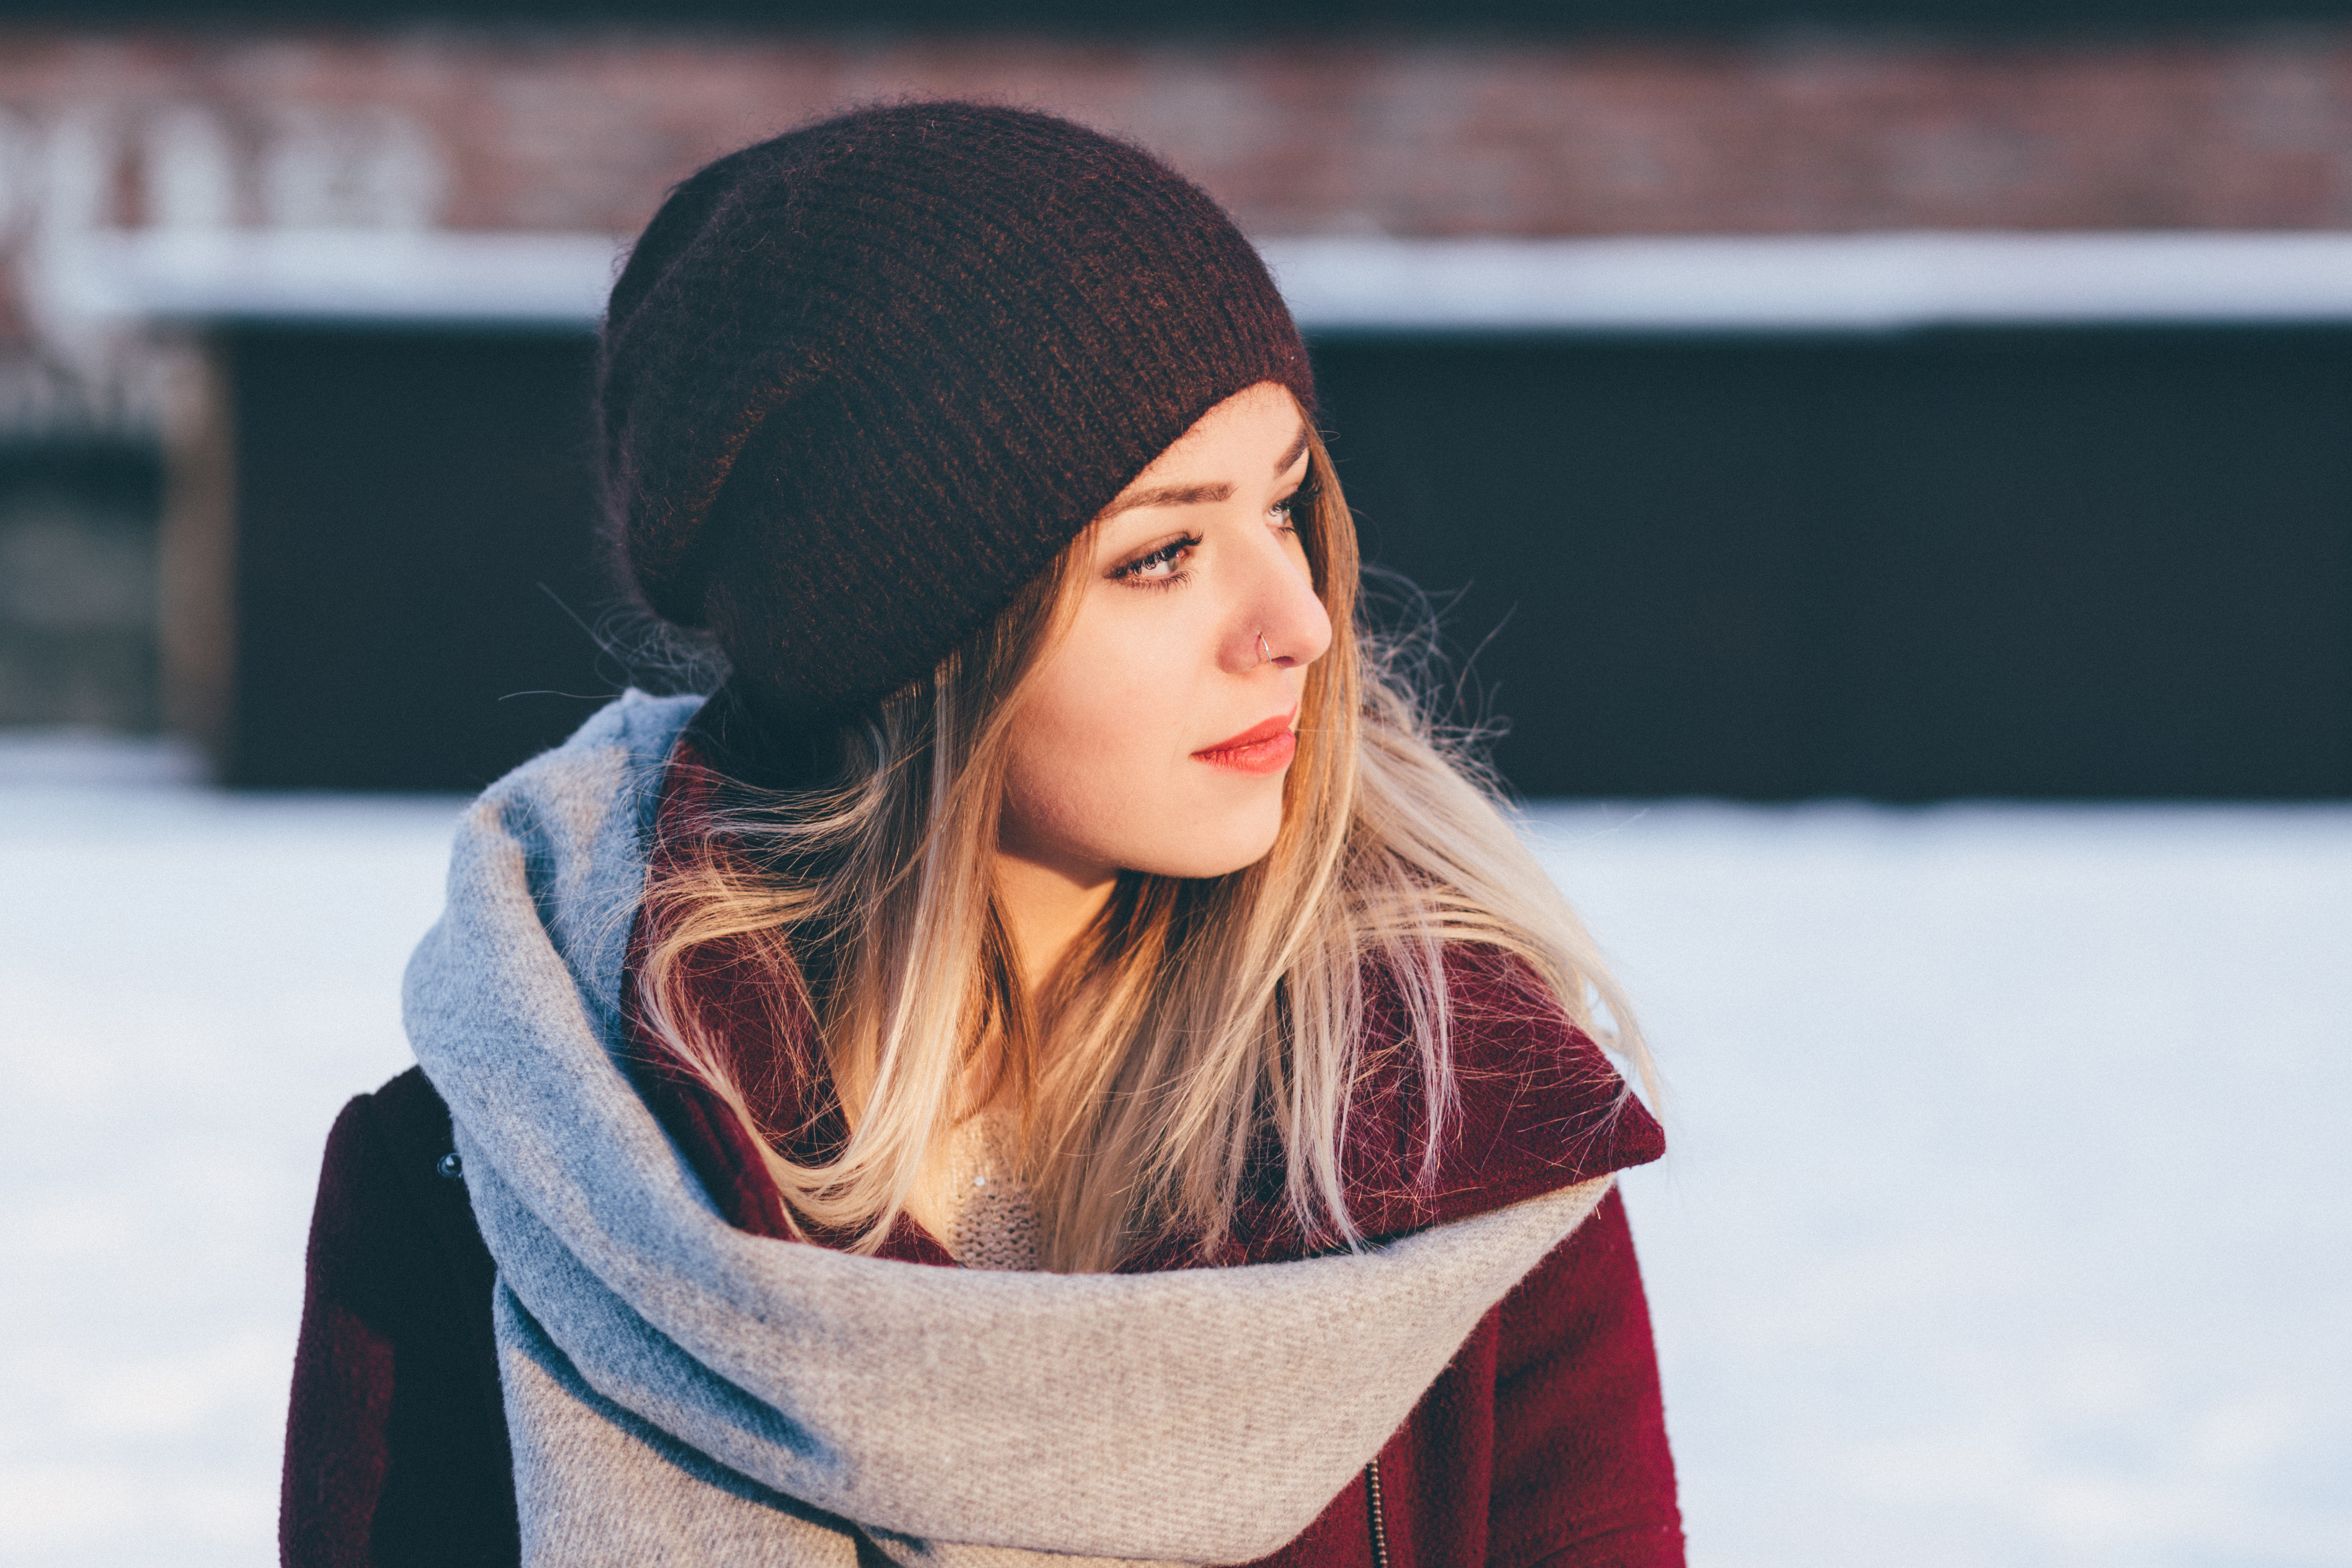 adolescent-beanie-beautiful-295821.jpg